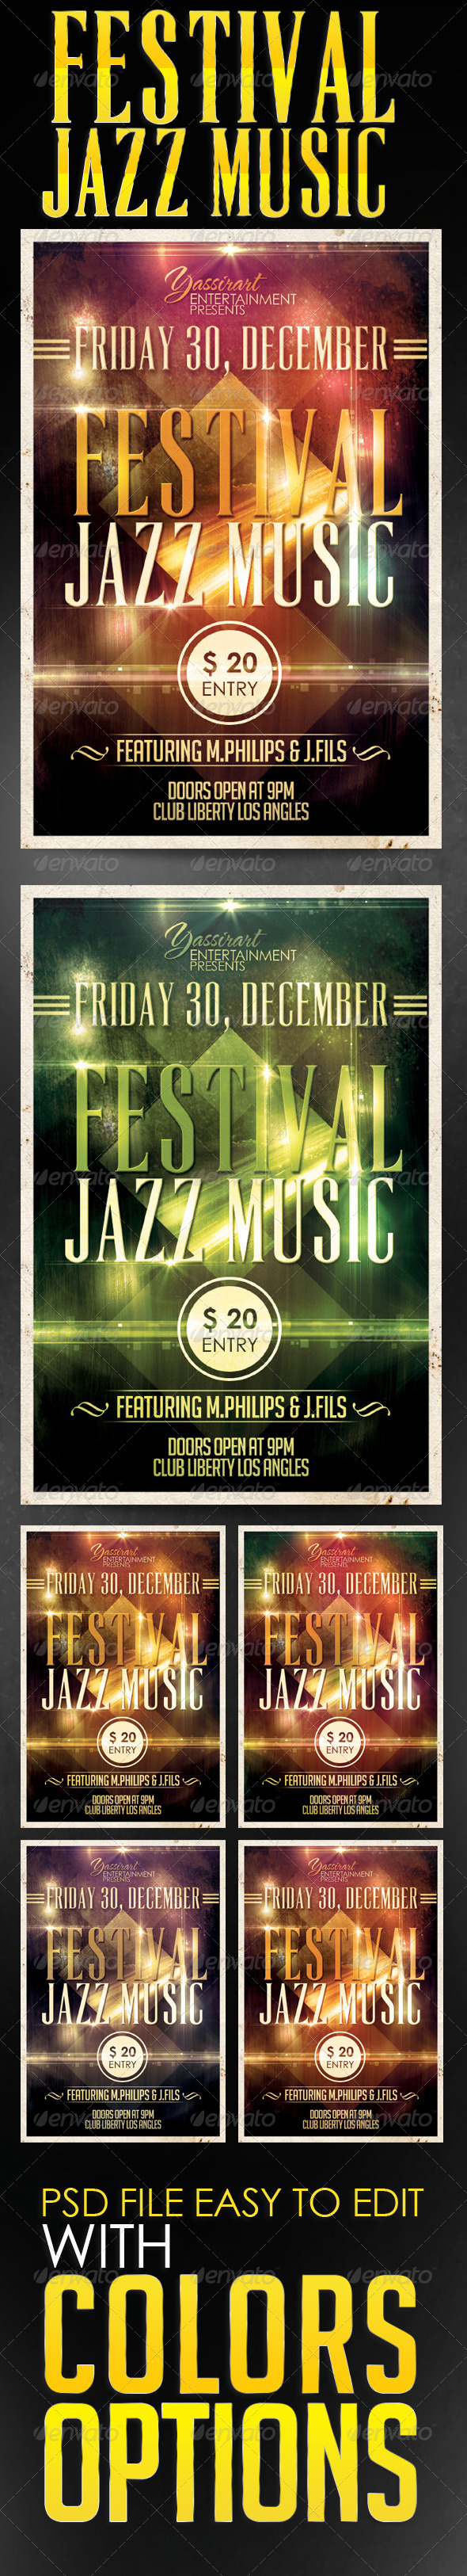 Festival Jazz Flyer Template